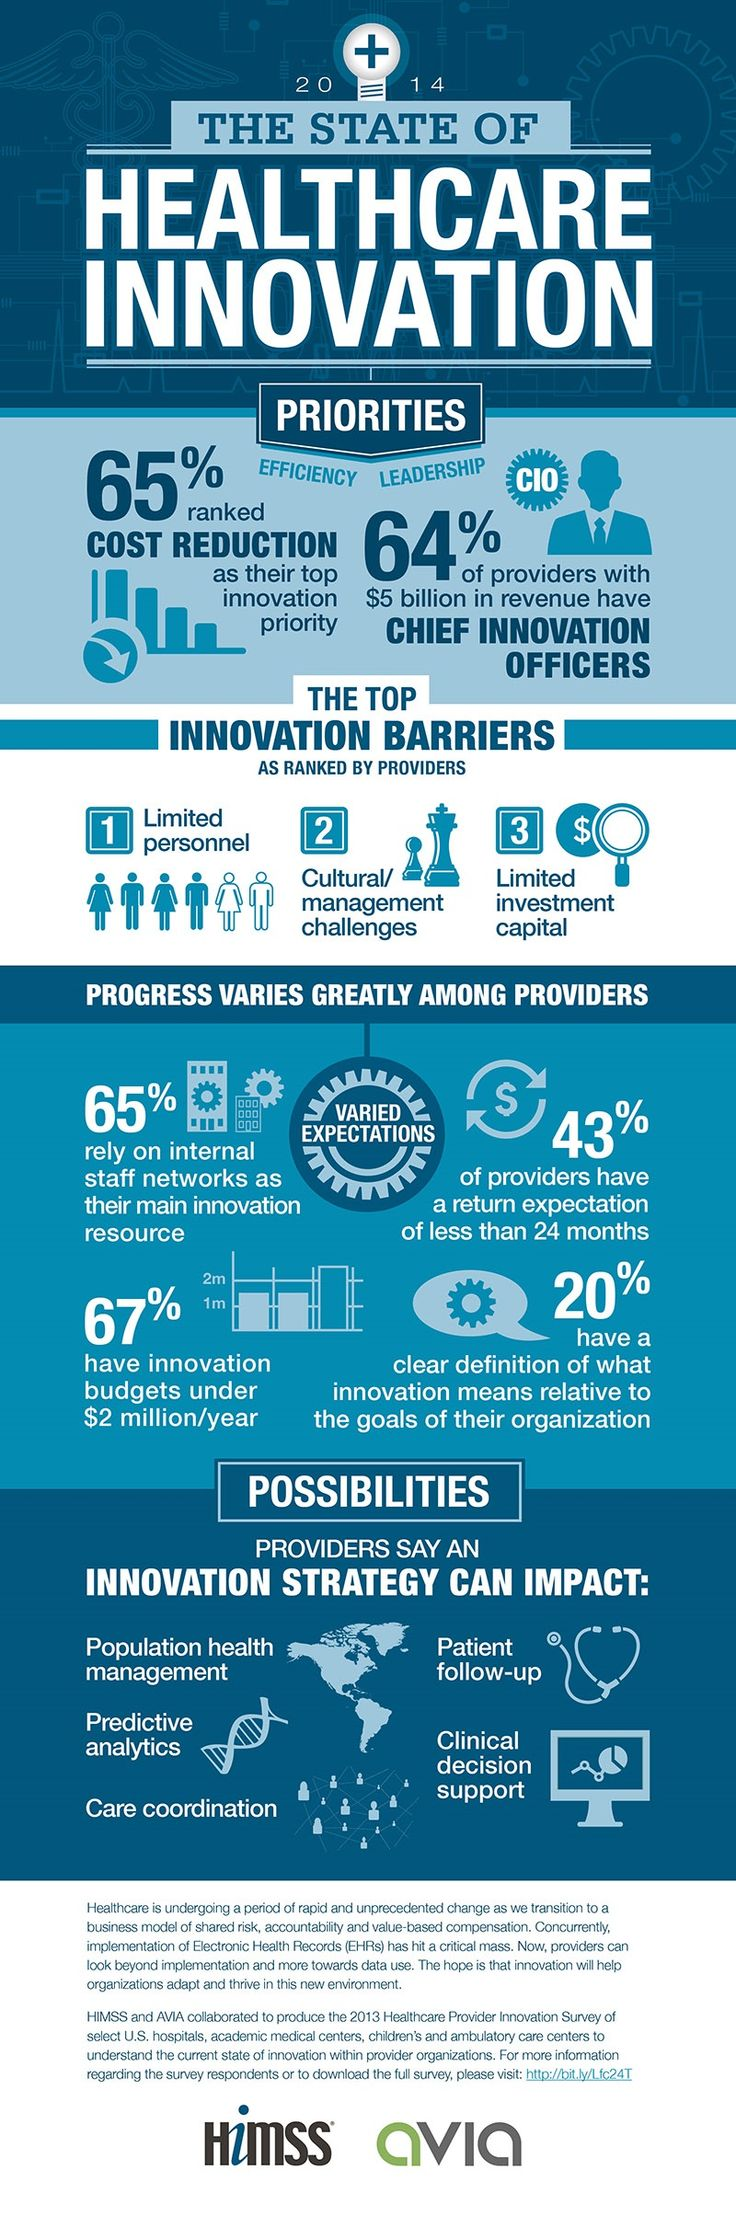 HIMSS: The State of Healthcare Innovation 2014 Infographic | New Visions Healthcare Blog #HIMSS #healthcare #technology #mHealth #eHealth - www.healthcoverageally.com